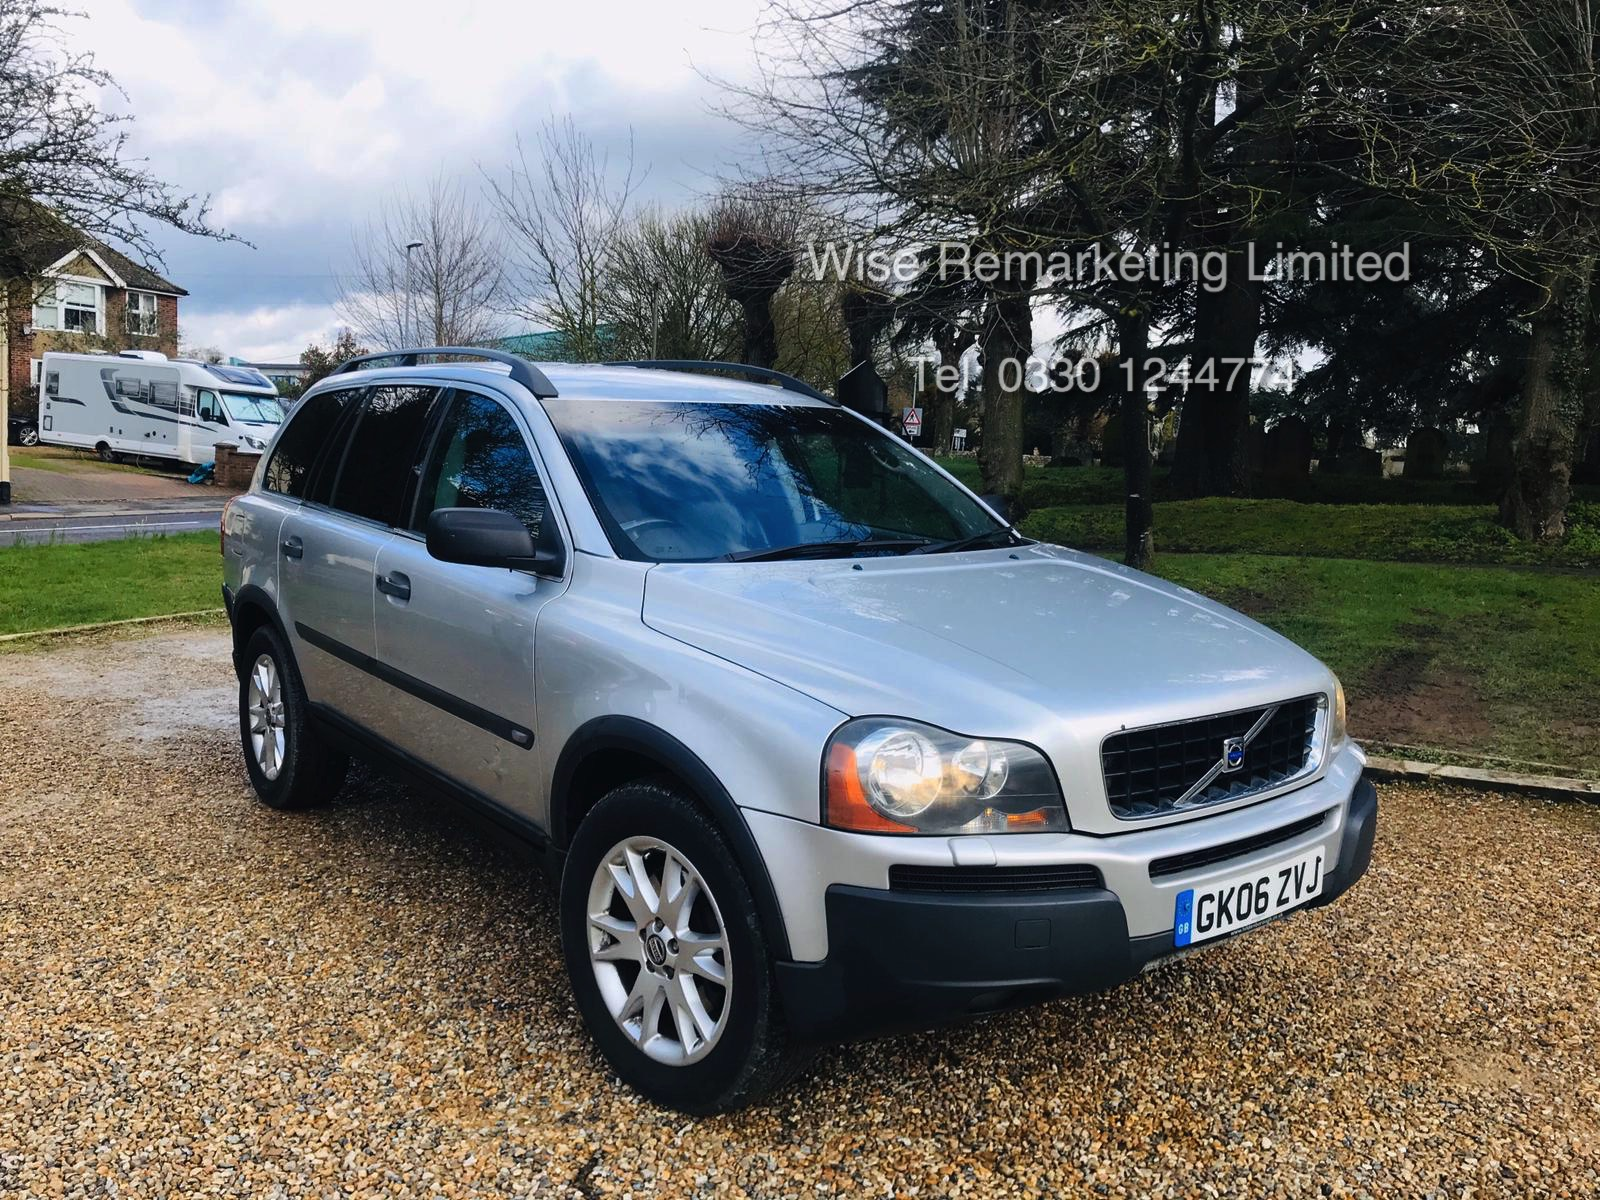 Volvo XC90 2.4 D5 Special Equipment Geartronic - 2006 06 Reg - Service History - 7 Seats - Sat Nav - Image 2 of 27